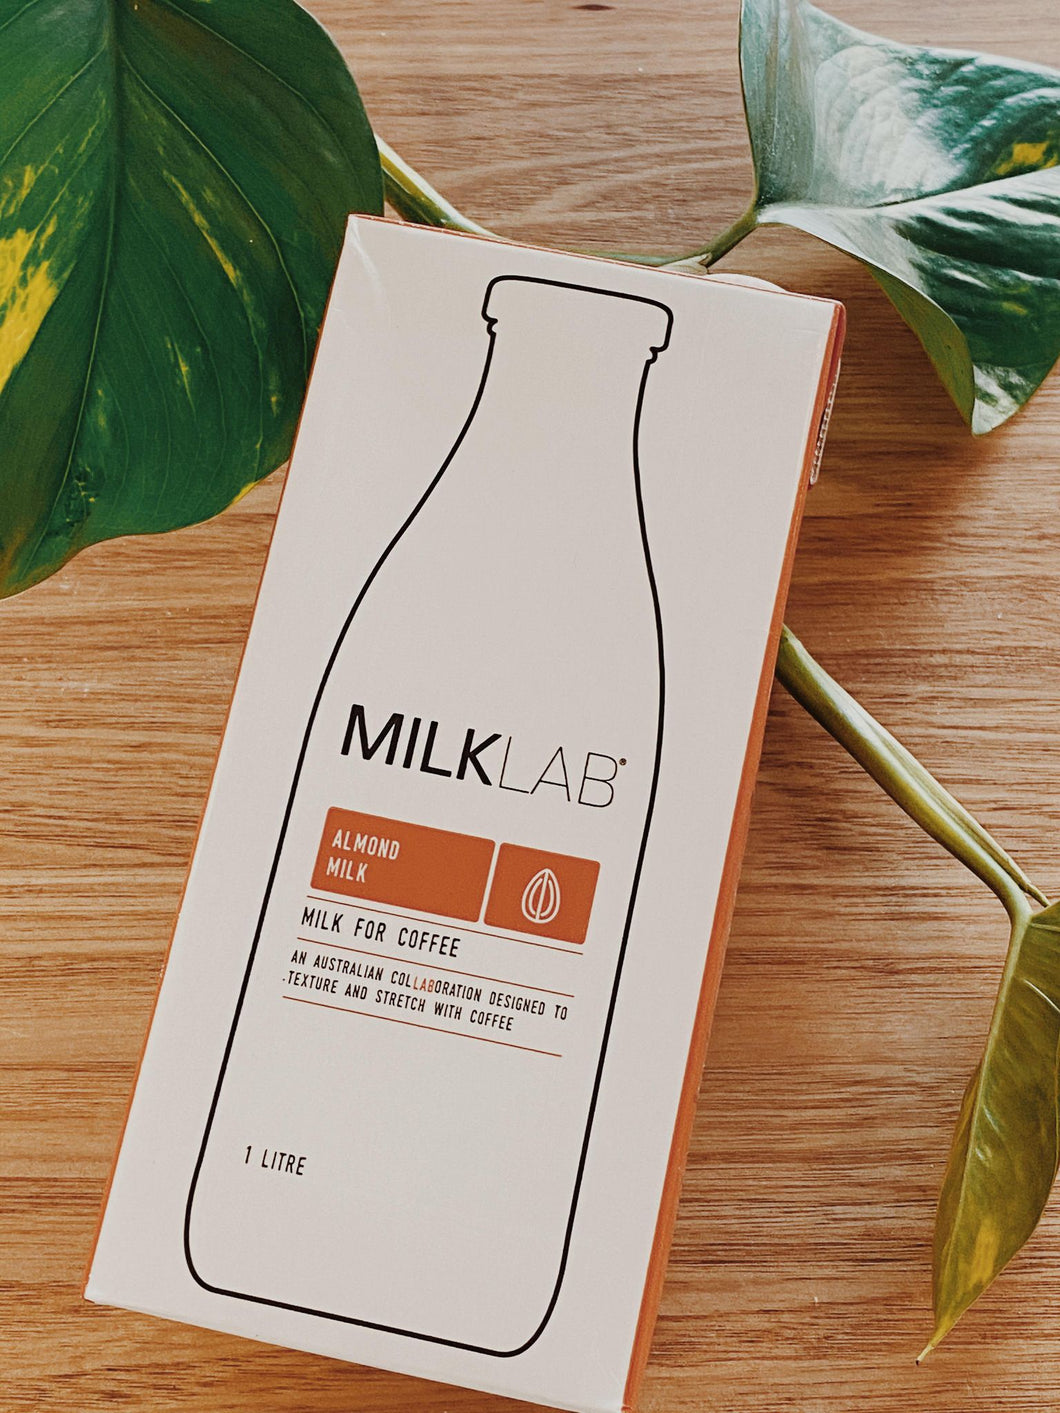 MilkLab Almond Milk